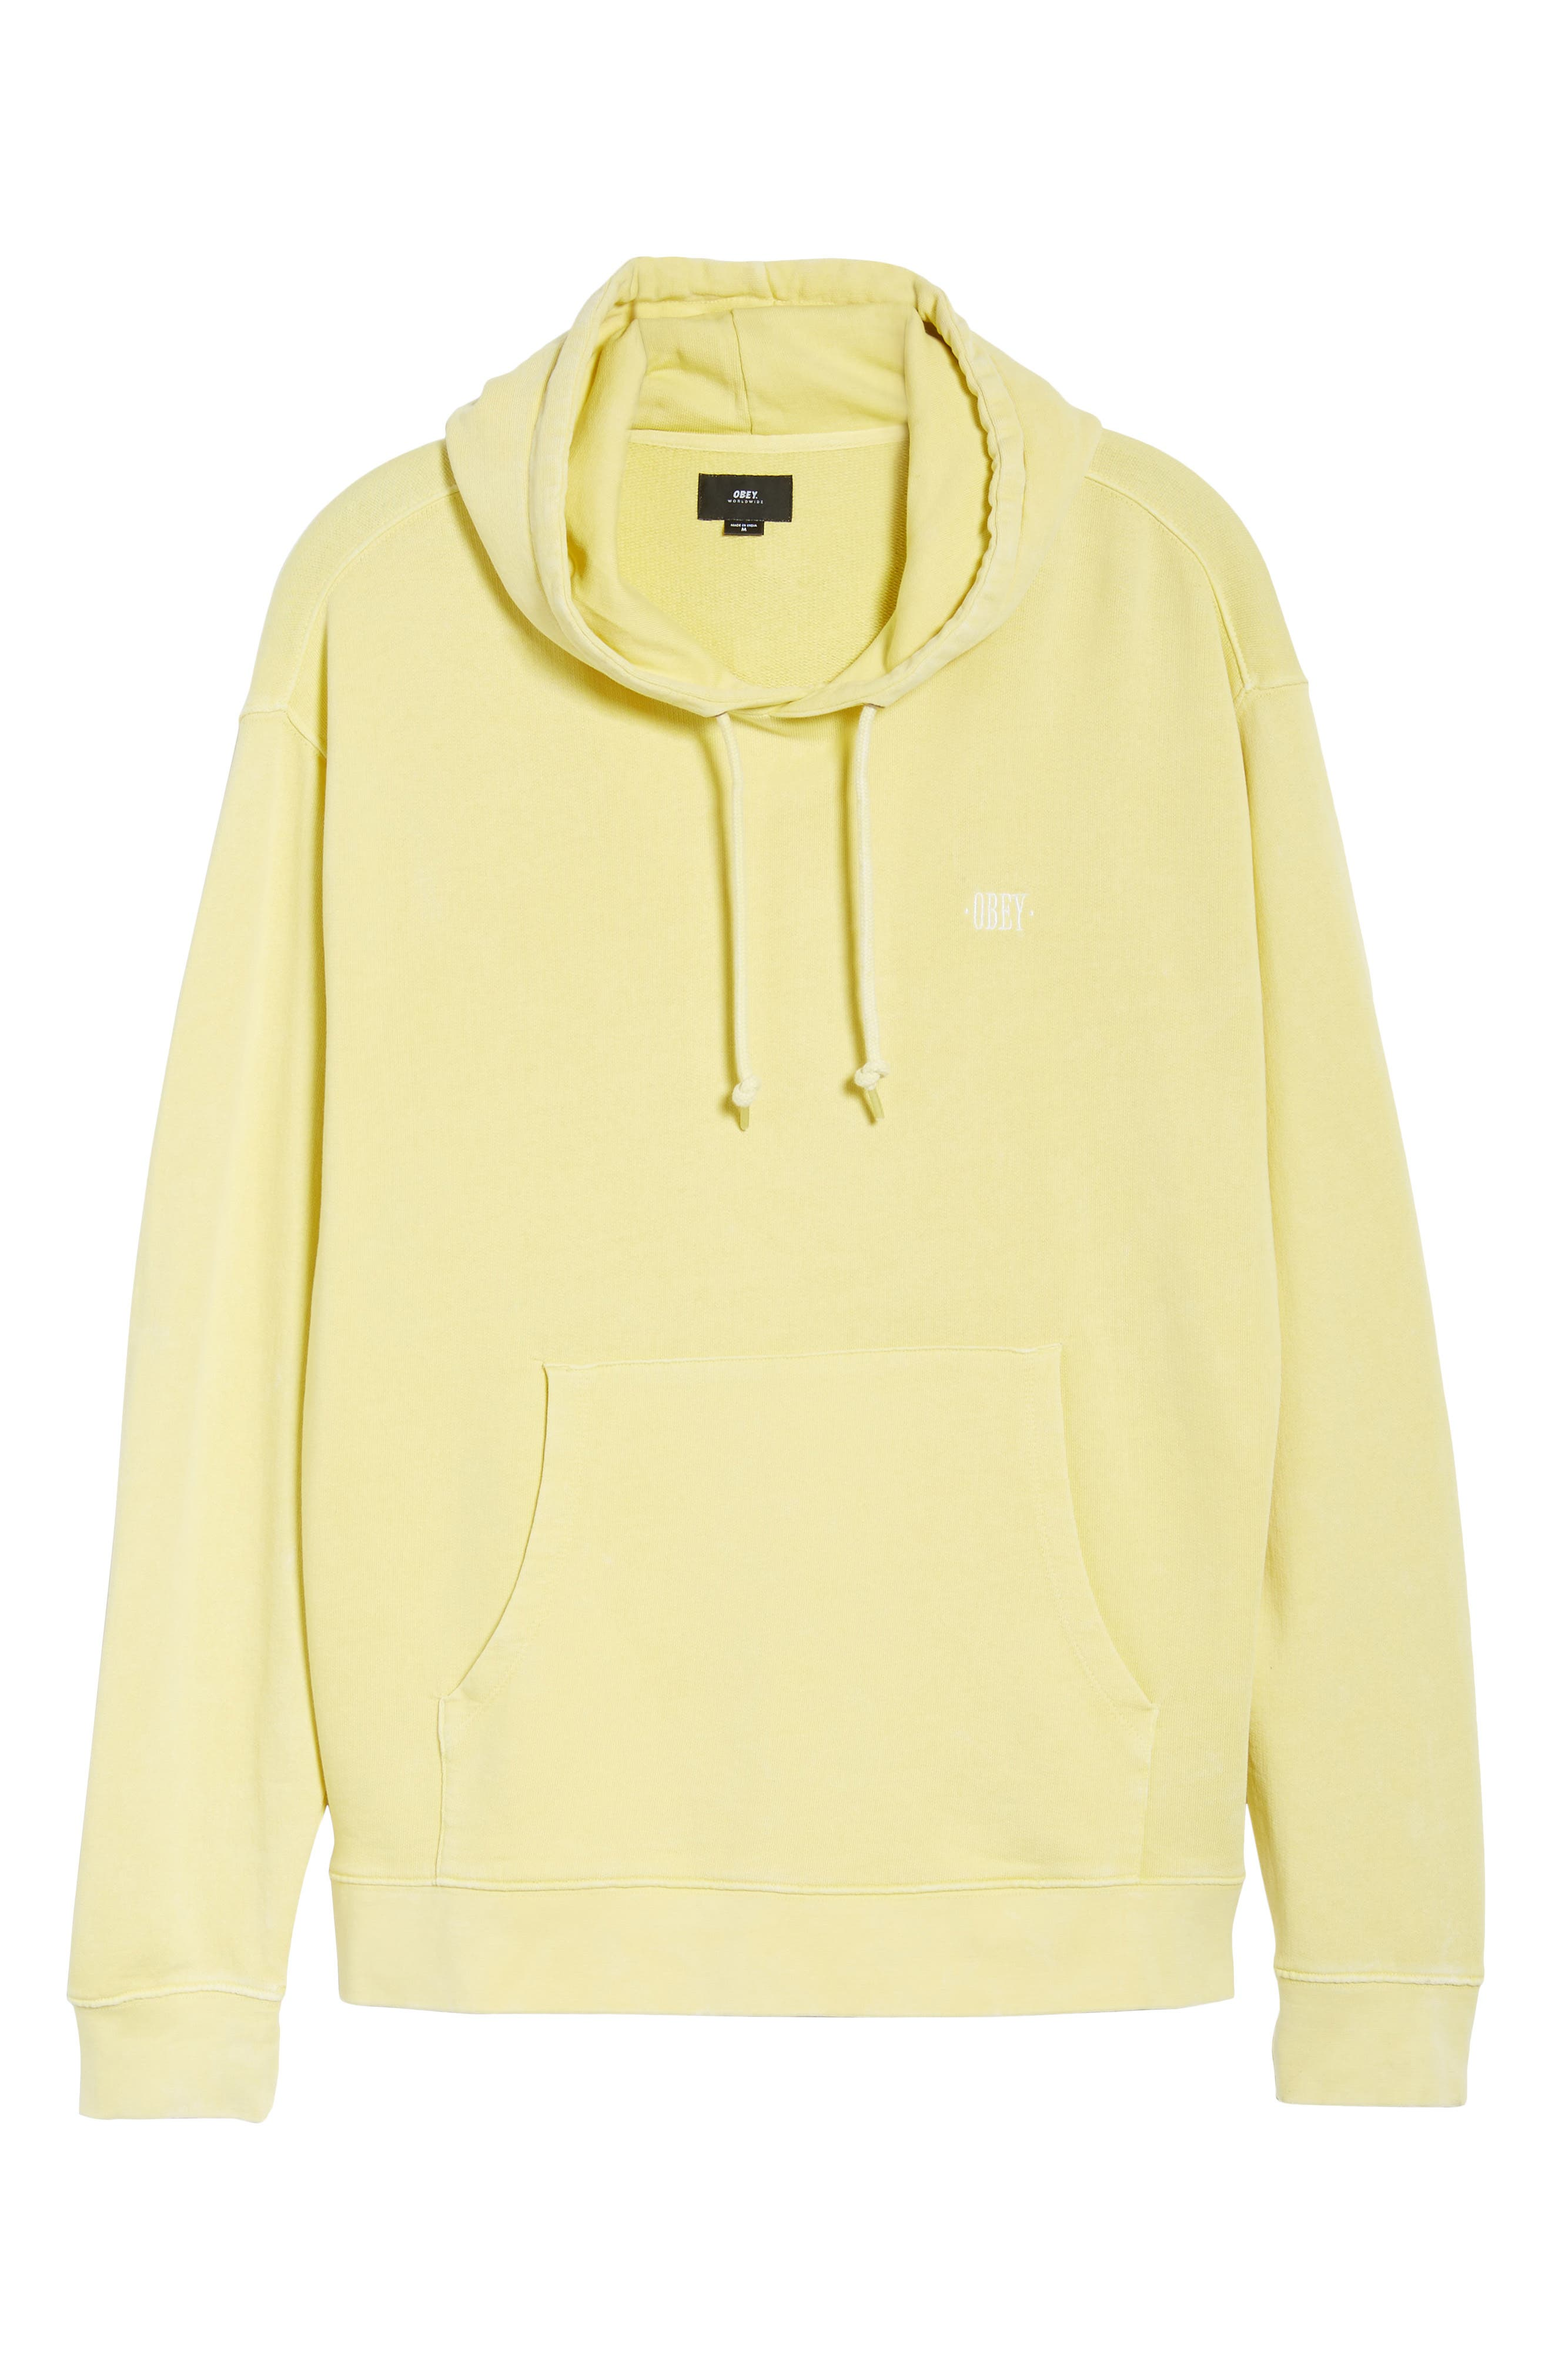 Faded Pigment Dyed Hoodie Sweatshirt,                             Alternate thumbnail 6, color,                             700